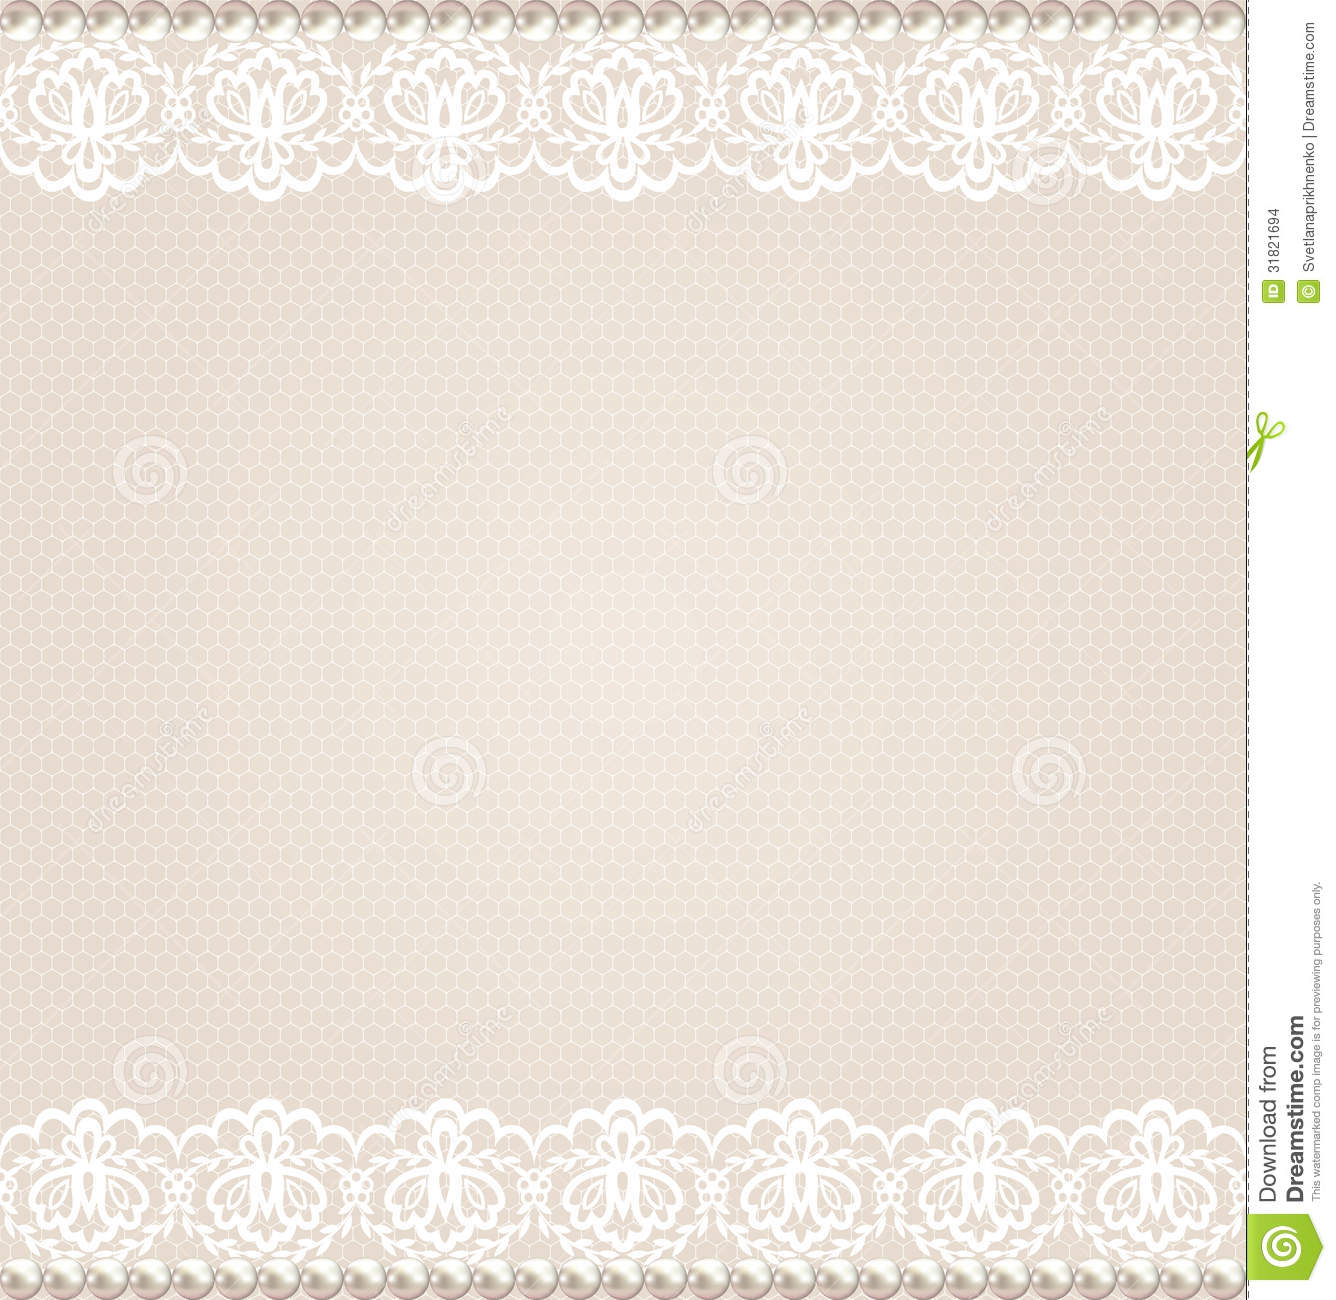 Lace Floral Border Stock Images